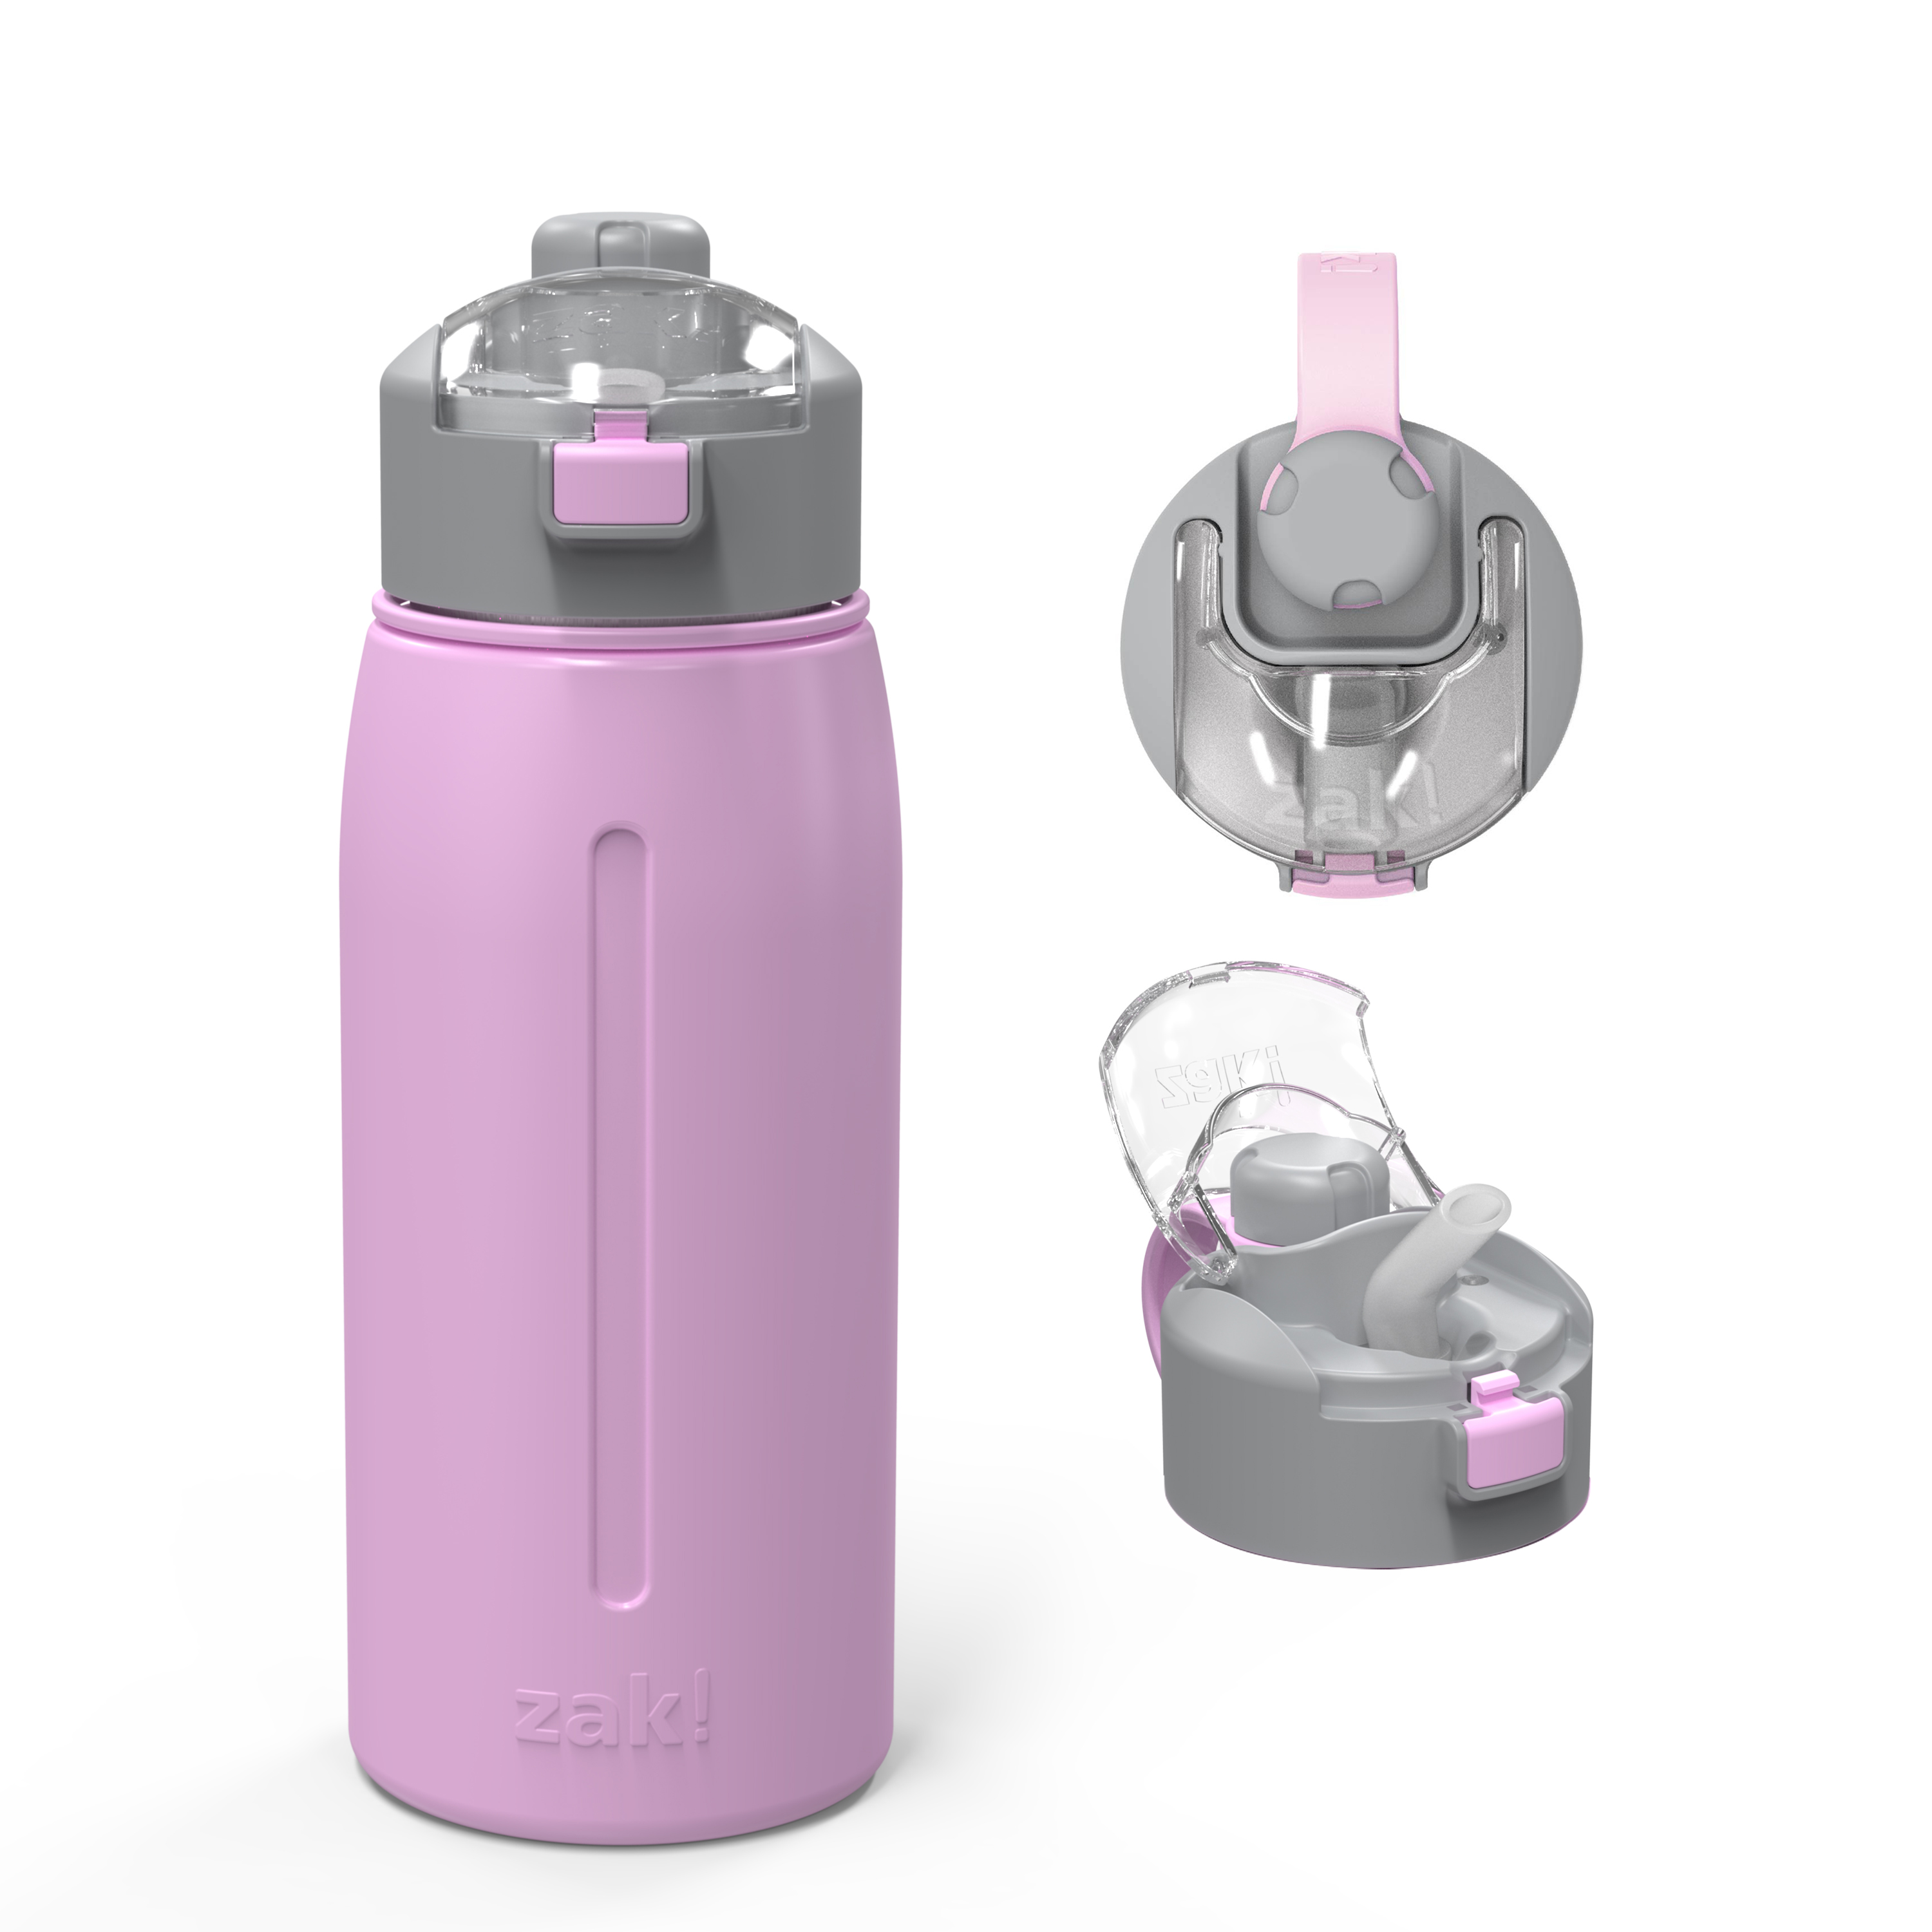 Genesis 24 ounce Vacuum Insulated Stainless Steel Tumbler, Lilac slideshow image 1